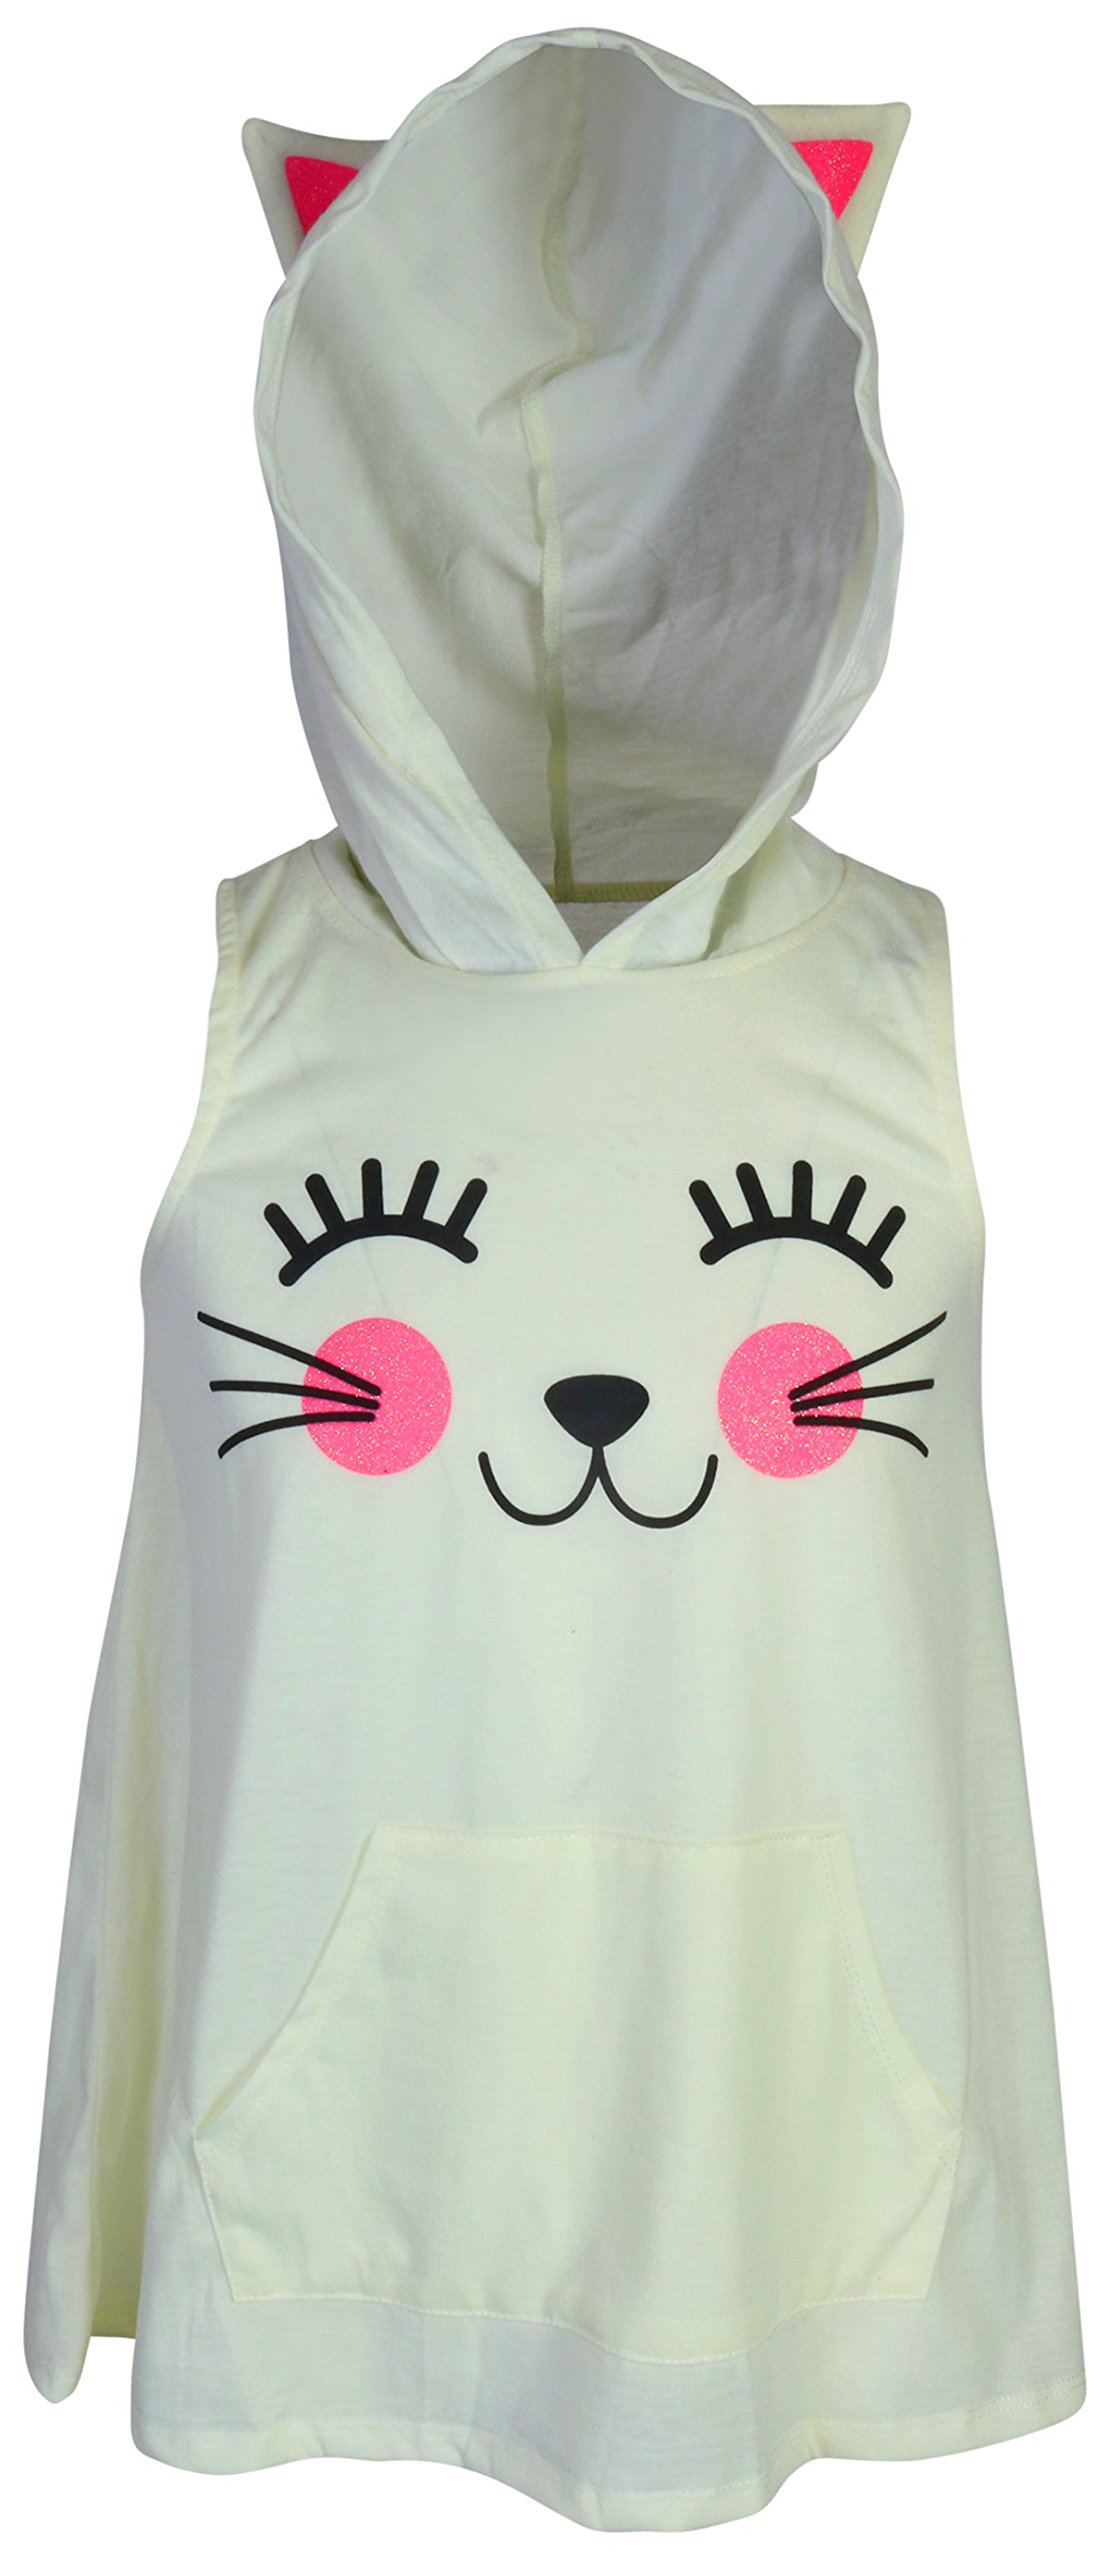 dELiAs Girl's Sleeveless Summer Pajama Short Set With Animal Character Hood, Cat, Size 14/16' by dELiA*s (Image #2)